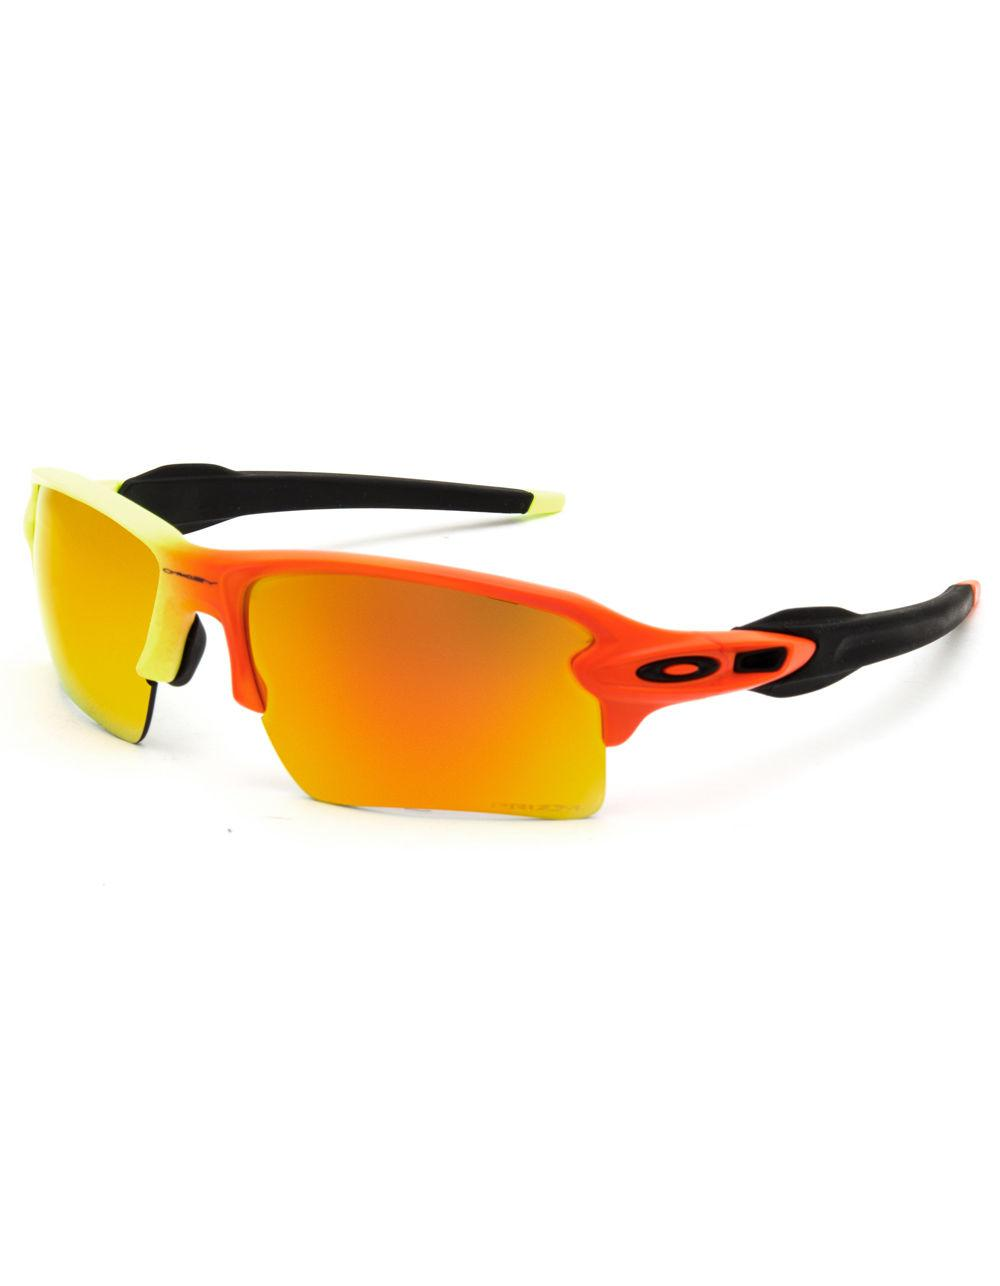 d4a183eb9c Lyst - Oakley Harmony Fade Flak 2.0 Xl Sunglasses in Orange for Men